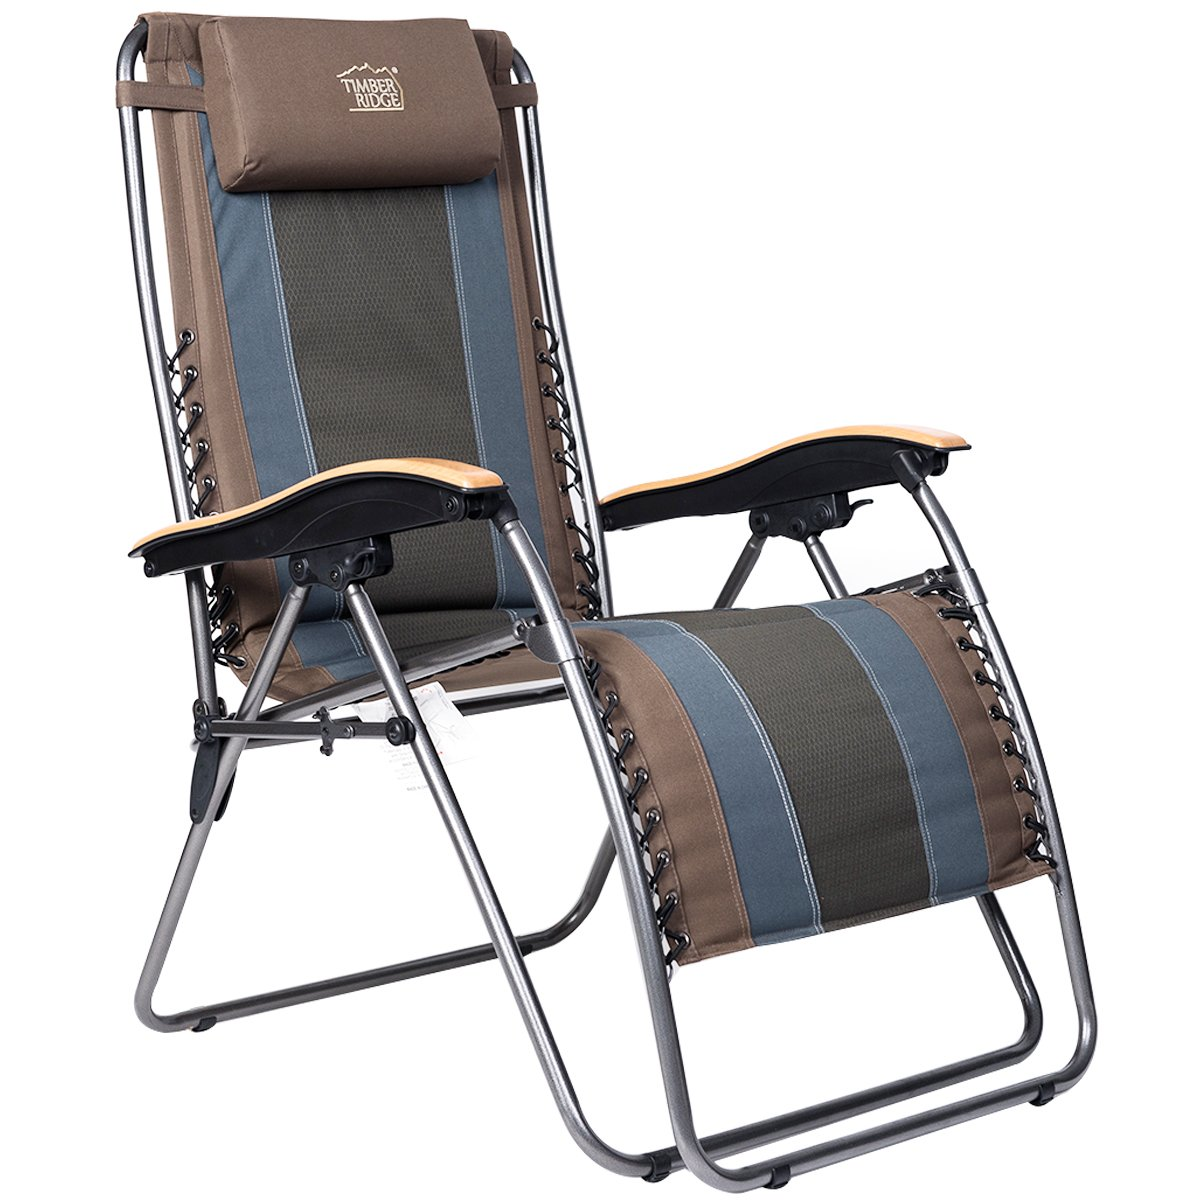 Timber Ridge Lounger Chair Zero Gravity Patio Oversize XL Padded Recliner Outdoor Support 350lbs